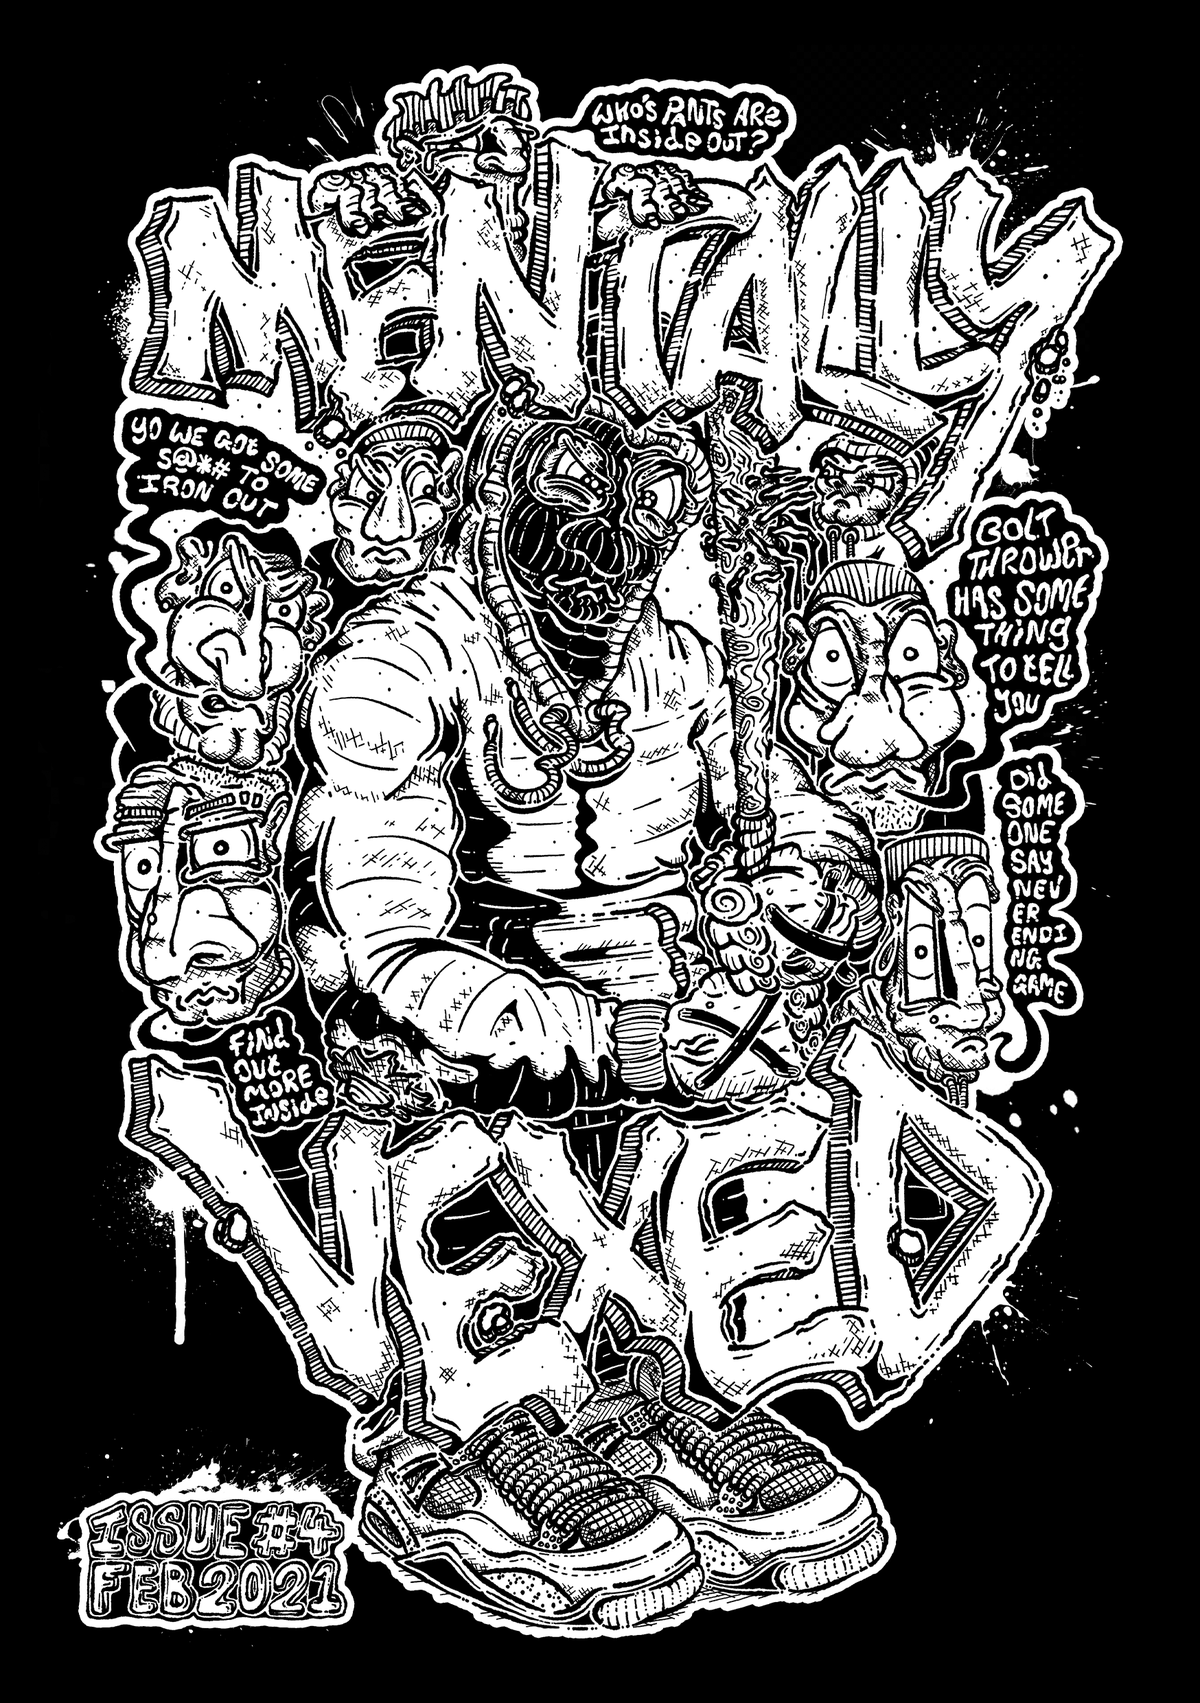 MENTALLY VEXED ISSUE #4